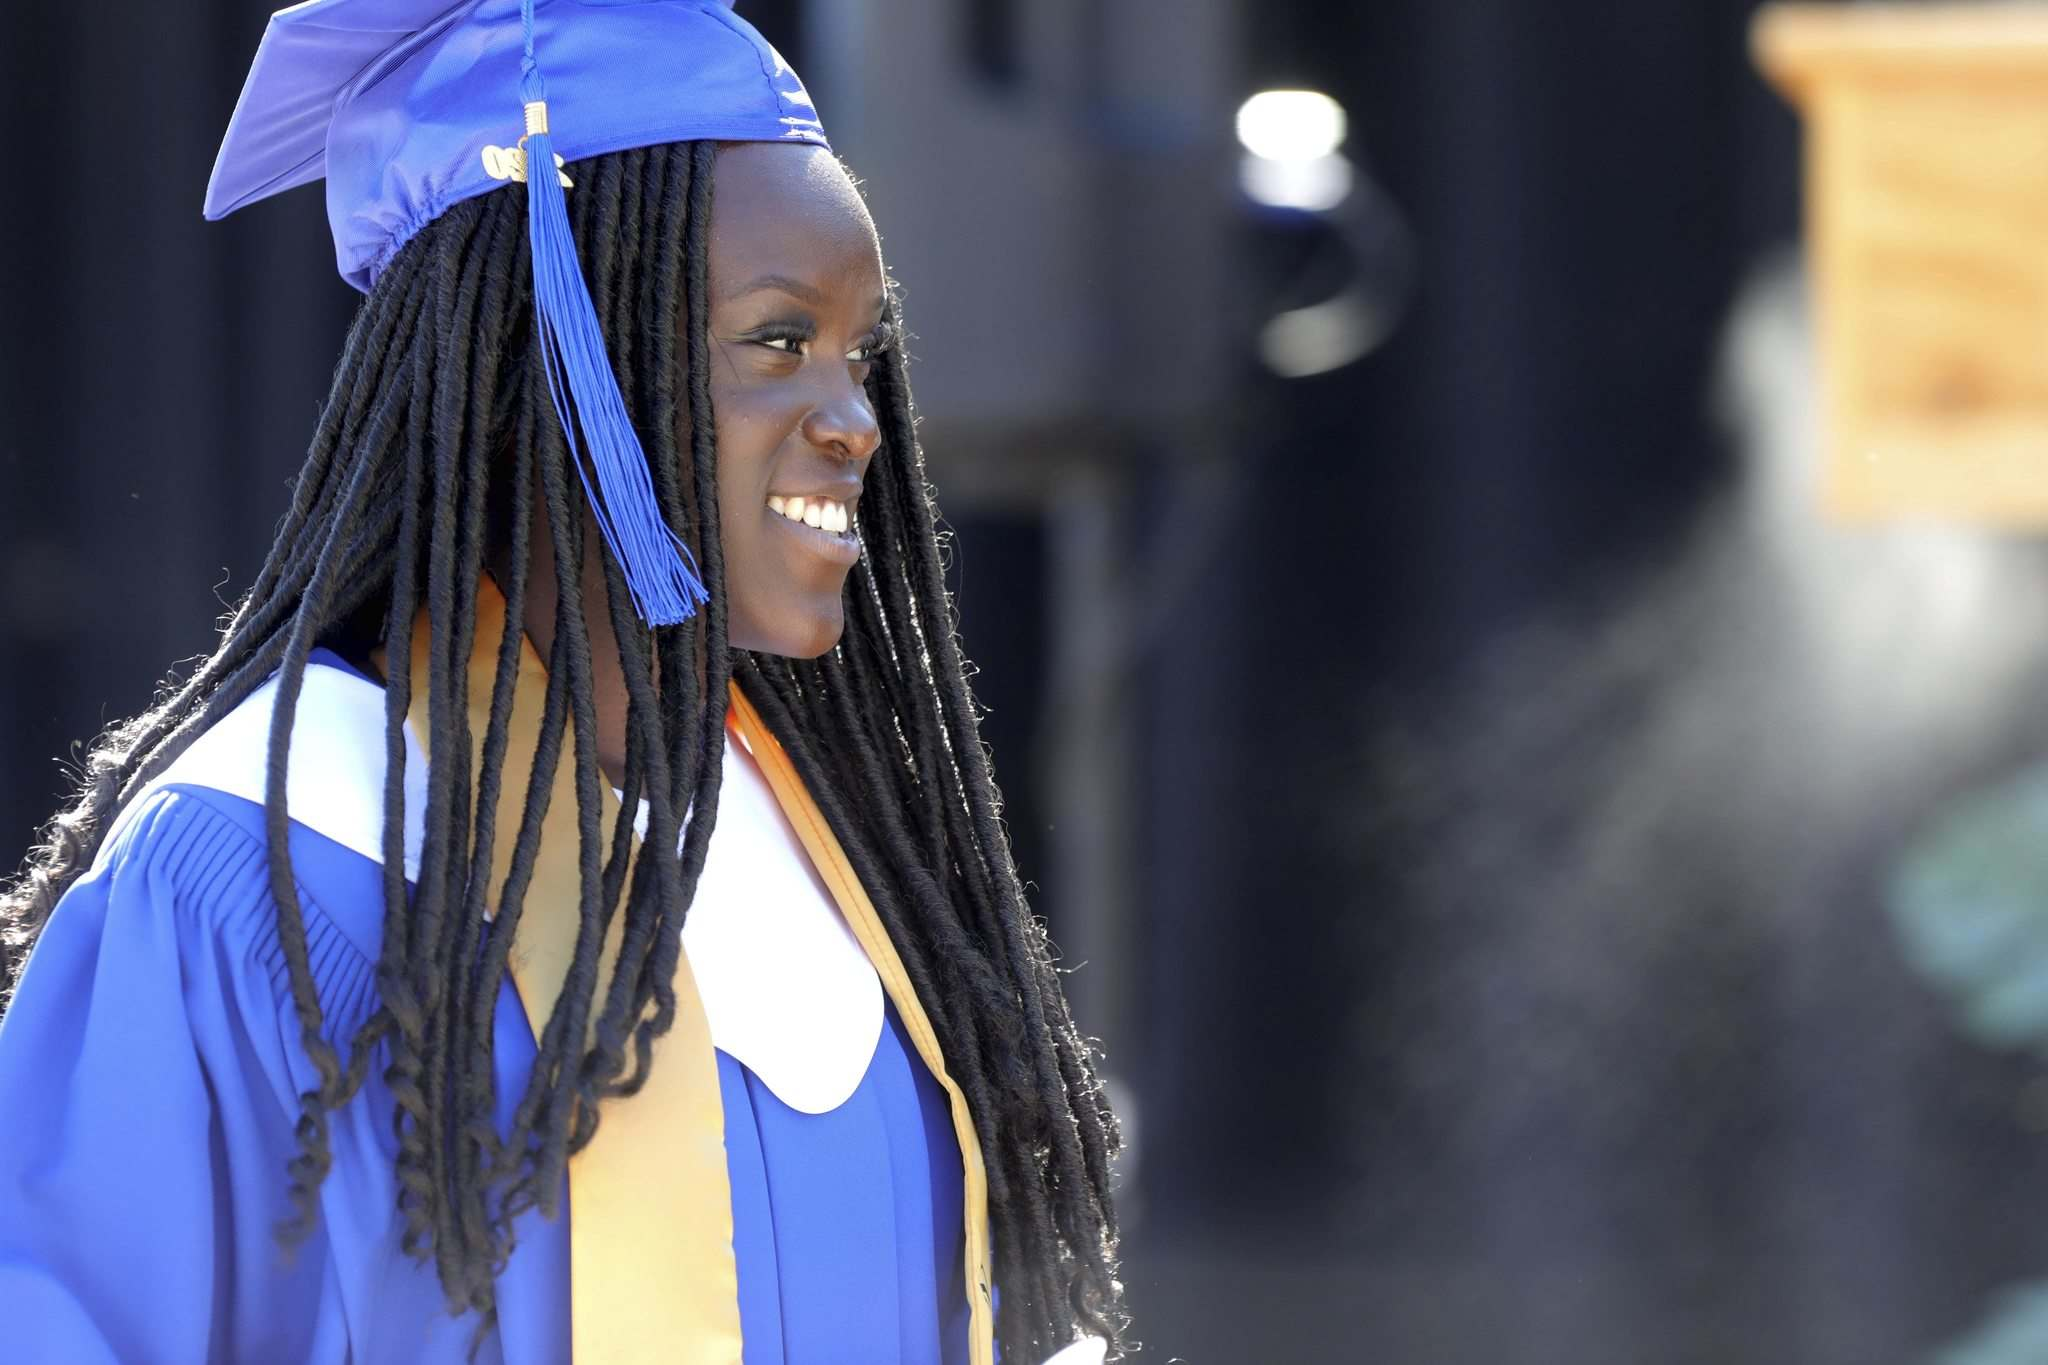 Valedictorian Nyume Mahmoud makes her way to the stage to give her speech to her fellow students on Wednesday.